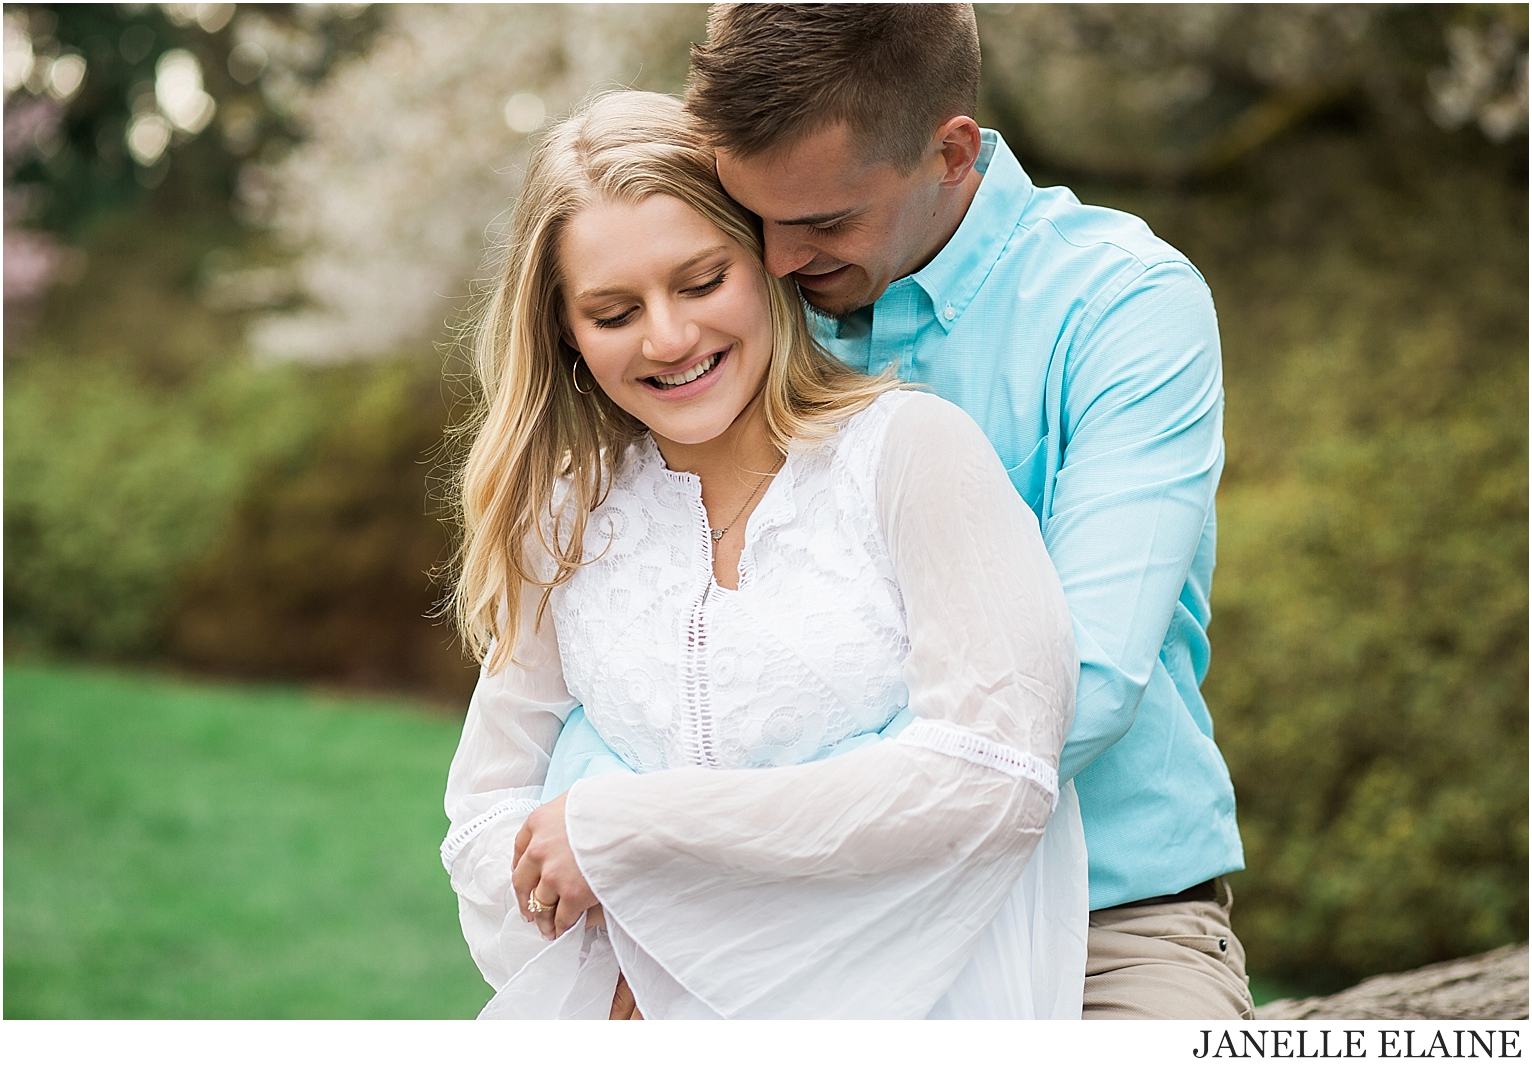 tricia and nate engagement photos-janelle elaine photography-177.jpg